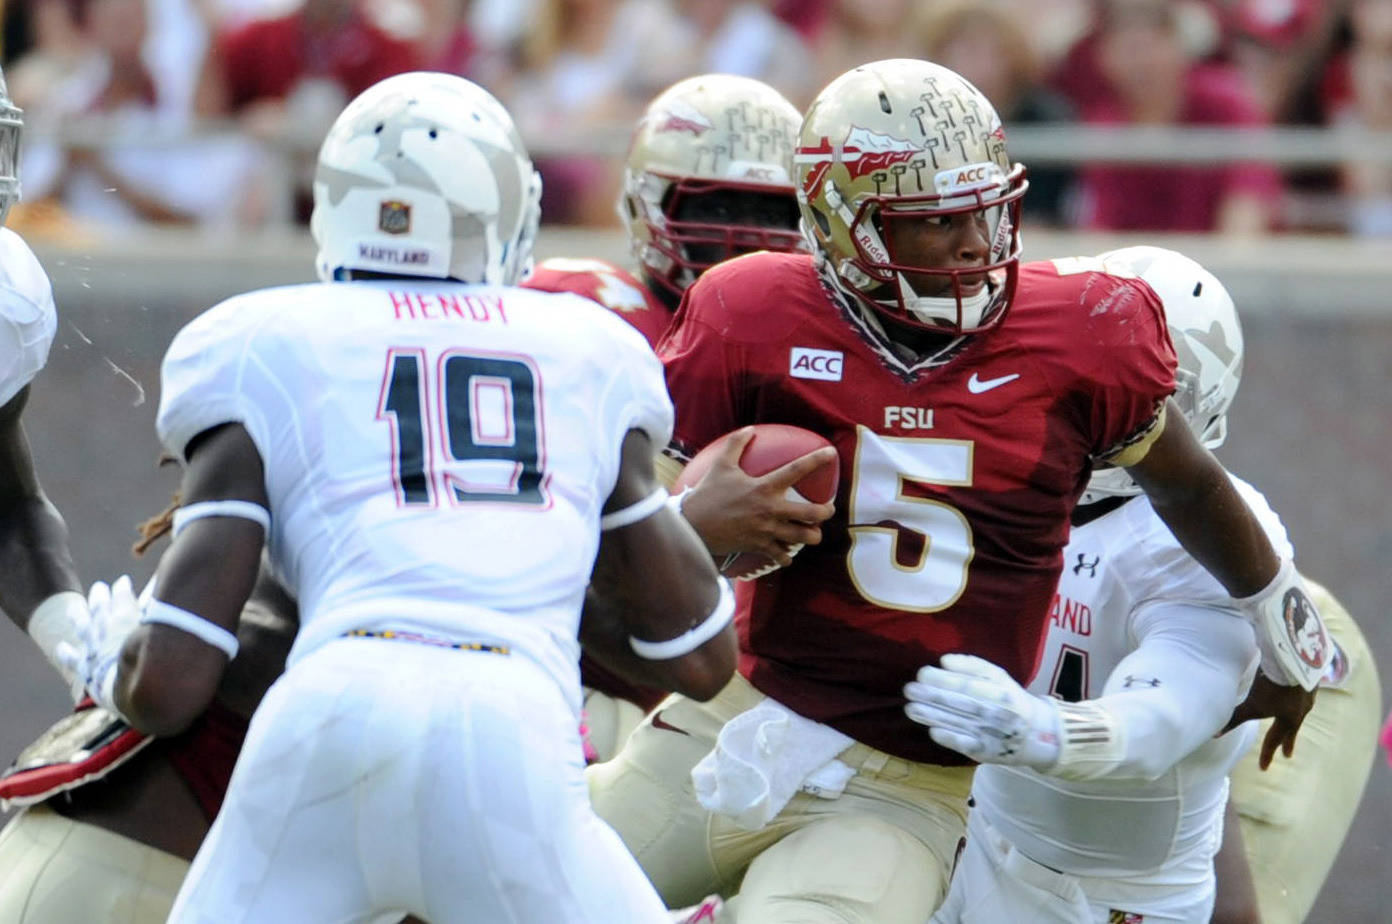 Seminoles quarterback Jameis Winston (5) tries to run past Terrapins defensive back A.J. Hendy (19). Mandatory Credit: Melina Vastola-USA TODAY Sports